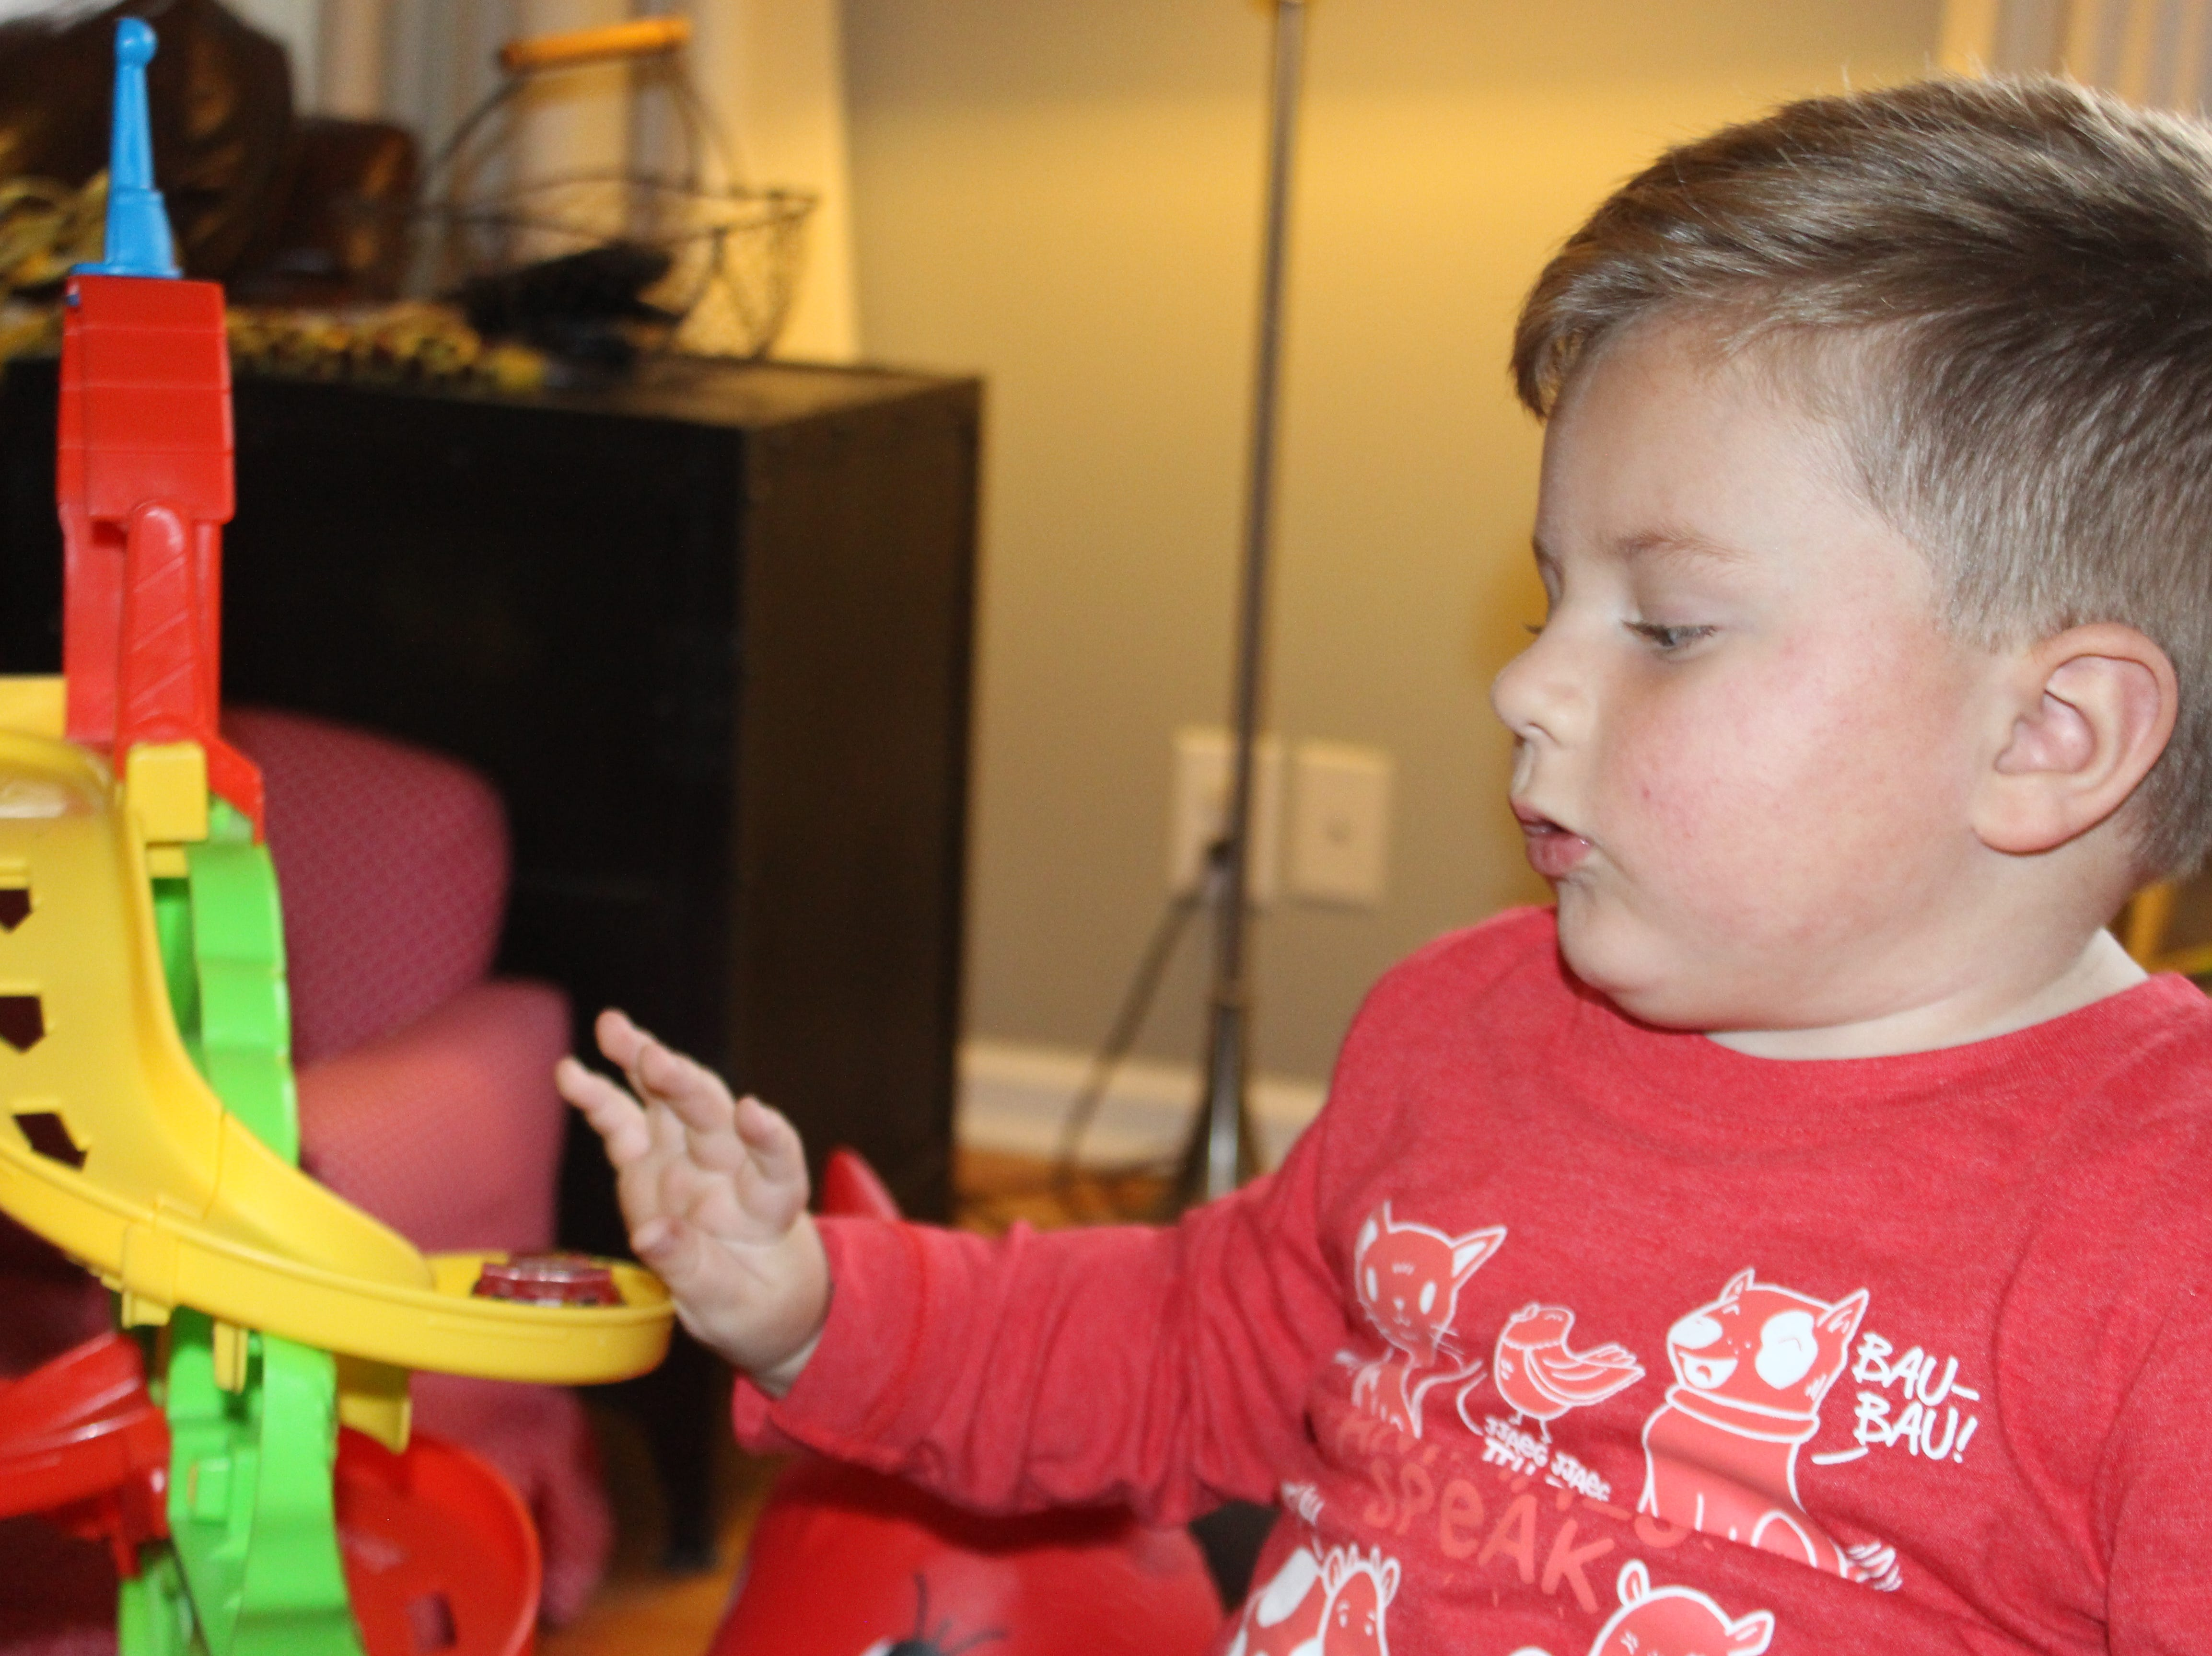 Oliver Schaper, who is receiving a first-of-its-kind treatment for spinal muscular atrophy, can now play with his toys thanks to the potentially lifesaving treatment.